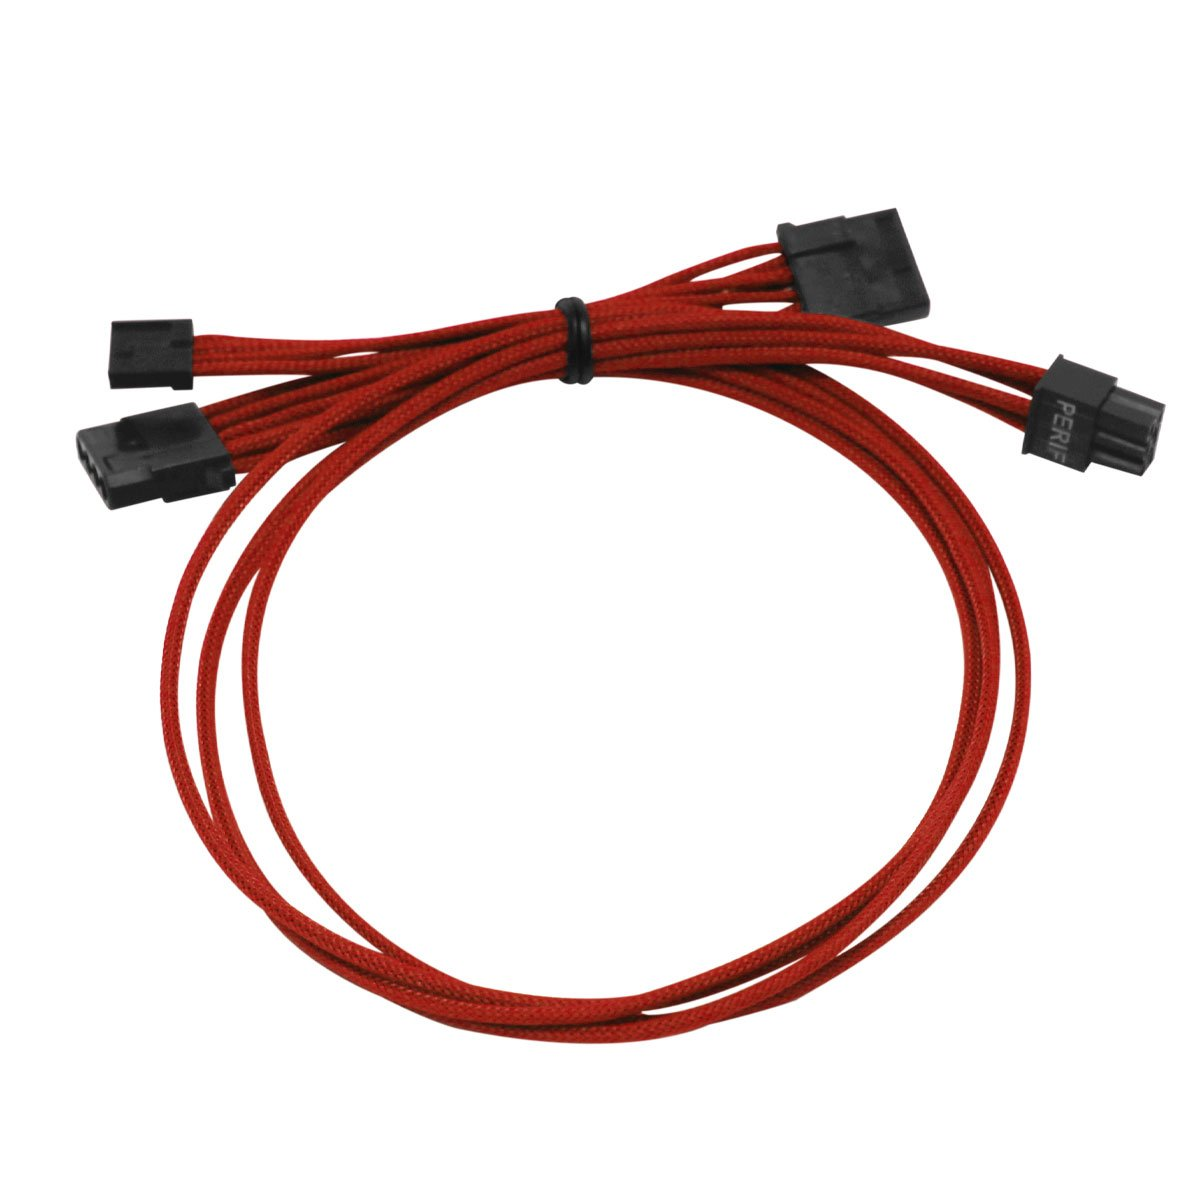 EVGA G2/G3/P2/T2  100-CR-1300-B9 Power Supply Cable Set (Individually Sleeved), Red by EVGA (Image #6)